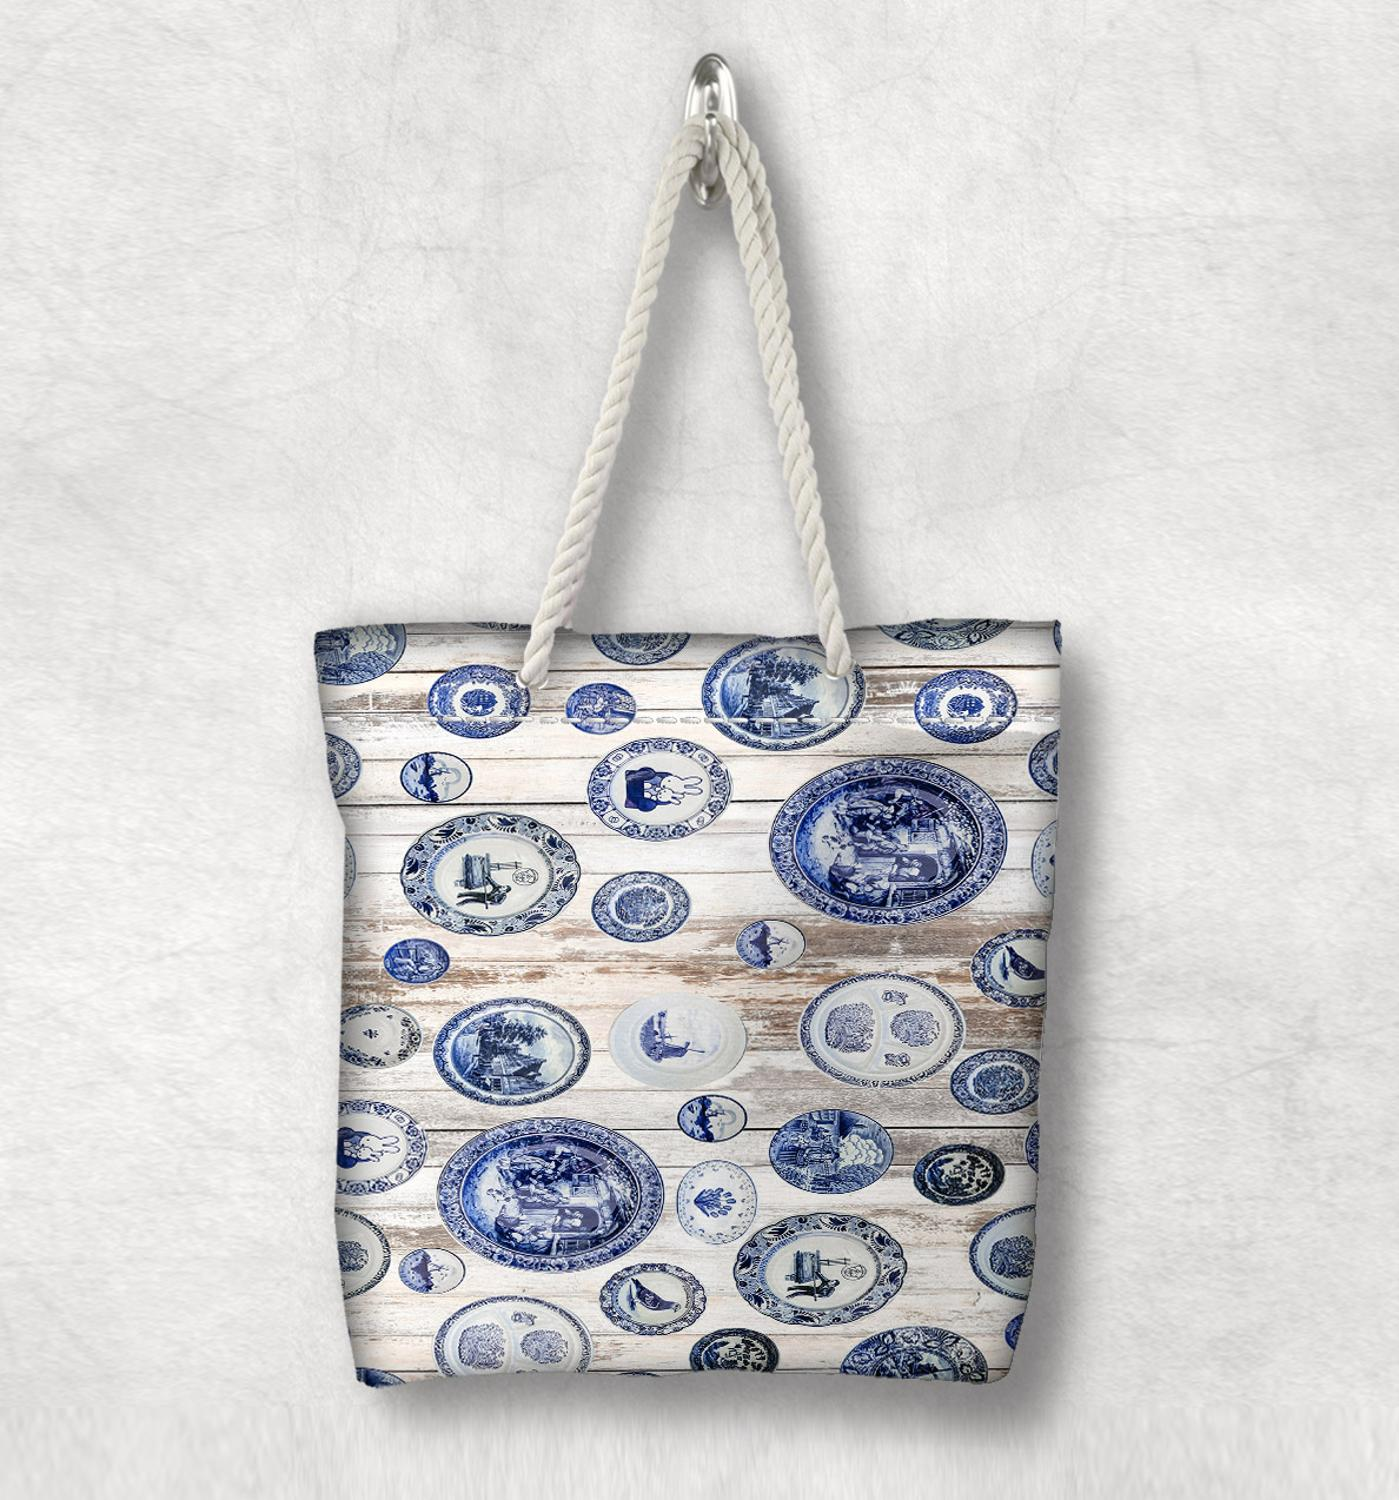 Else Blue Vintage England Ethnic New Fashion White Rope Handle Canvas Bag Cotton Canvas Zippered Tote Bag Shoulder Bag